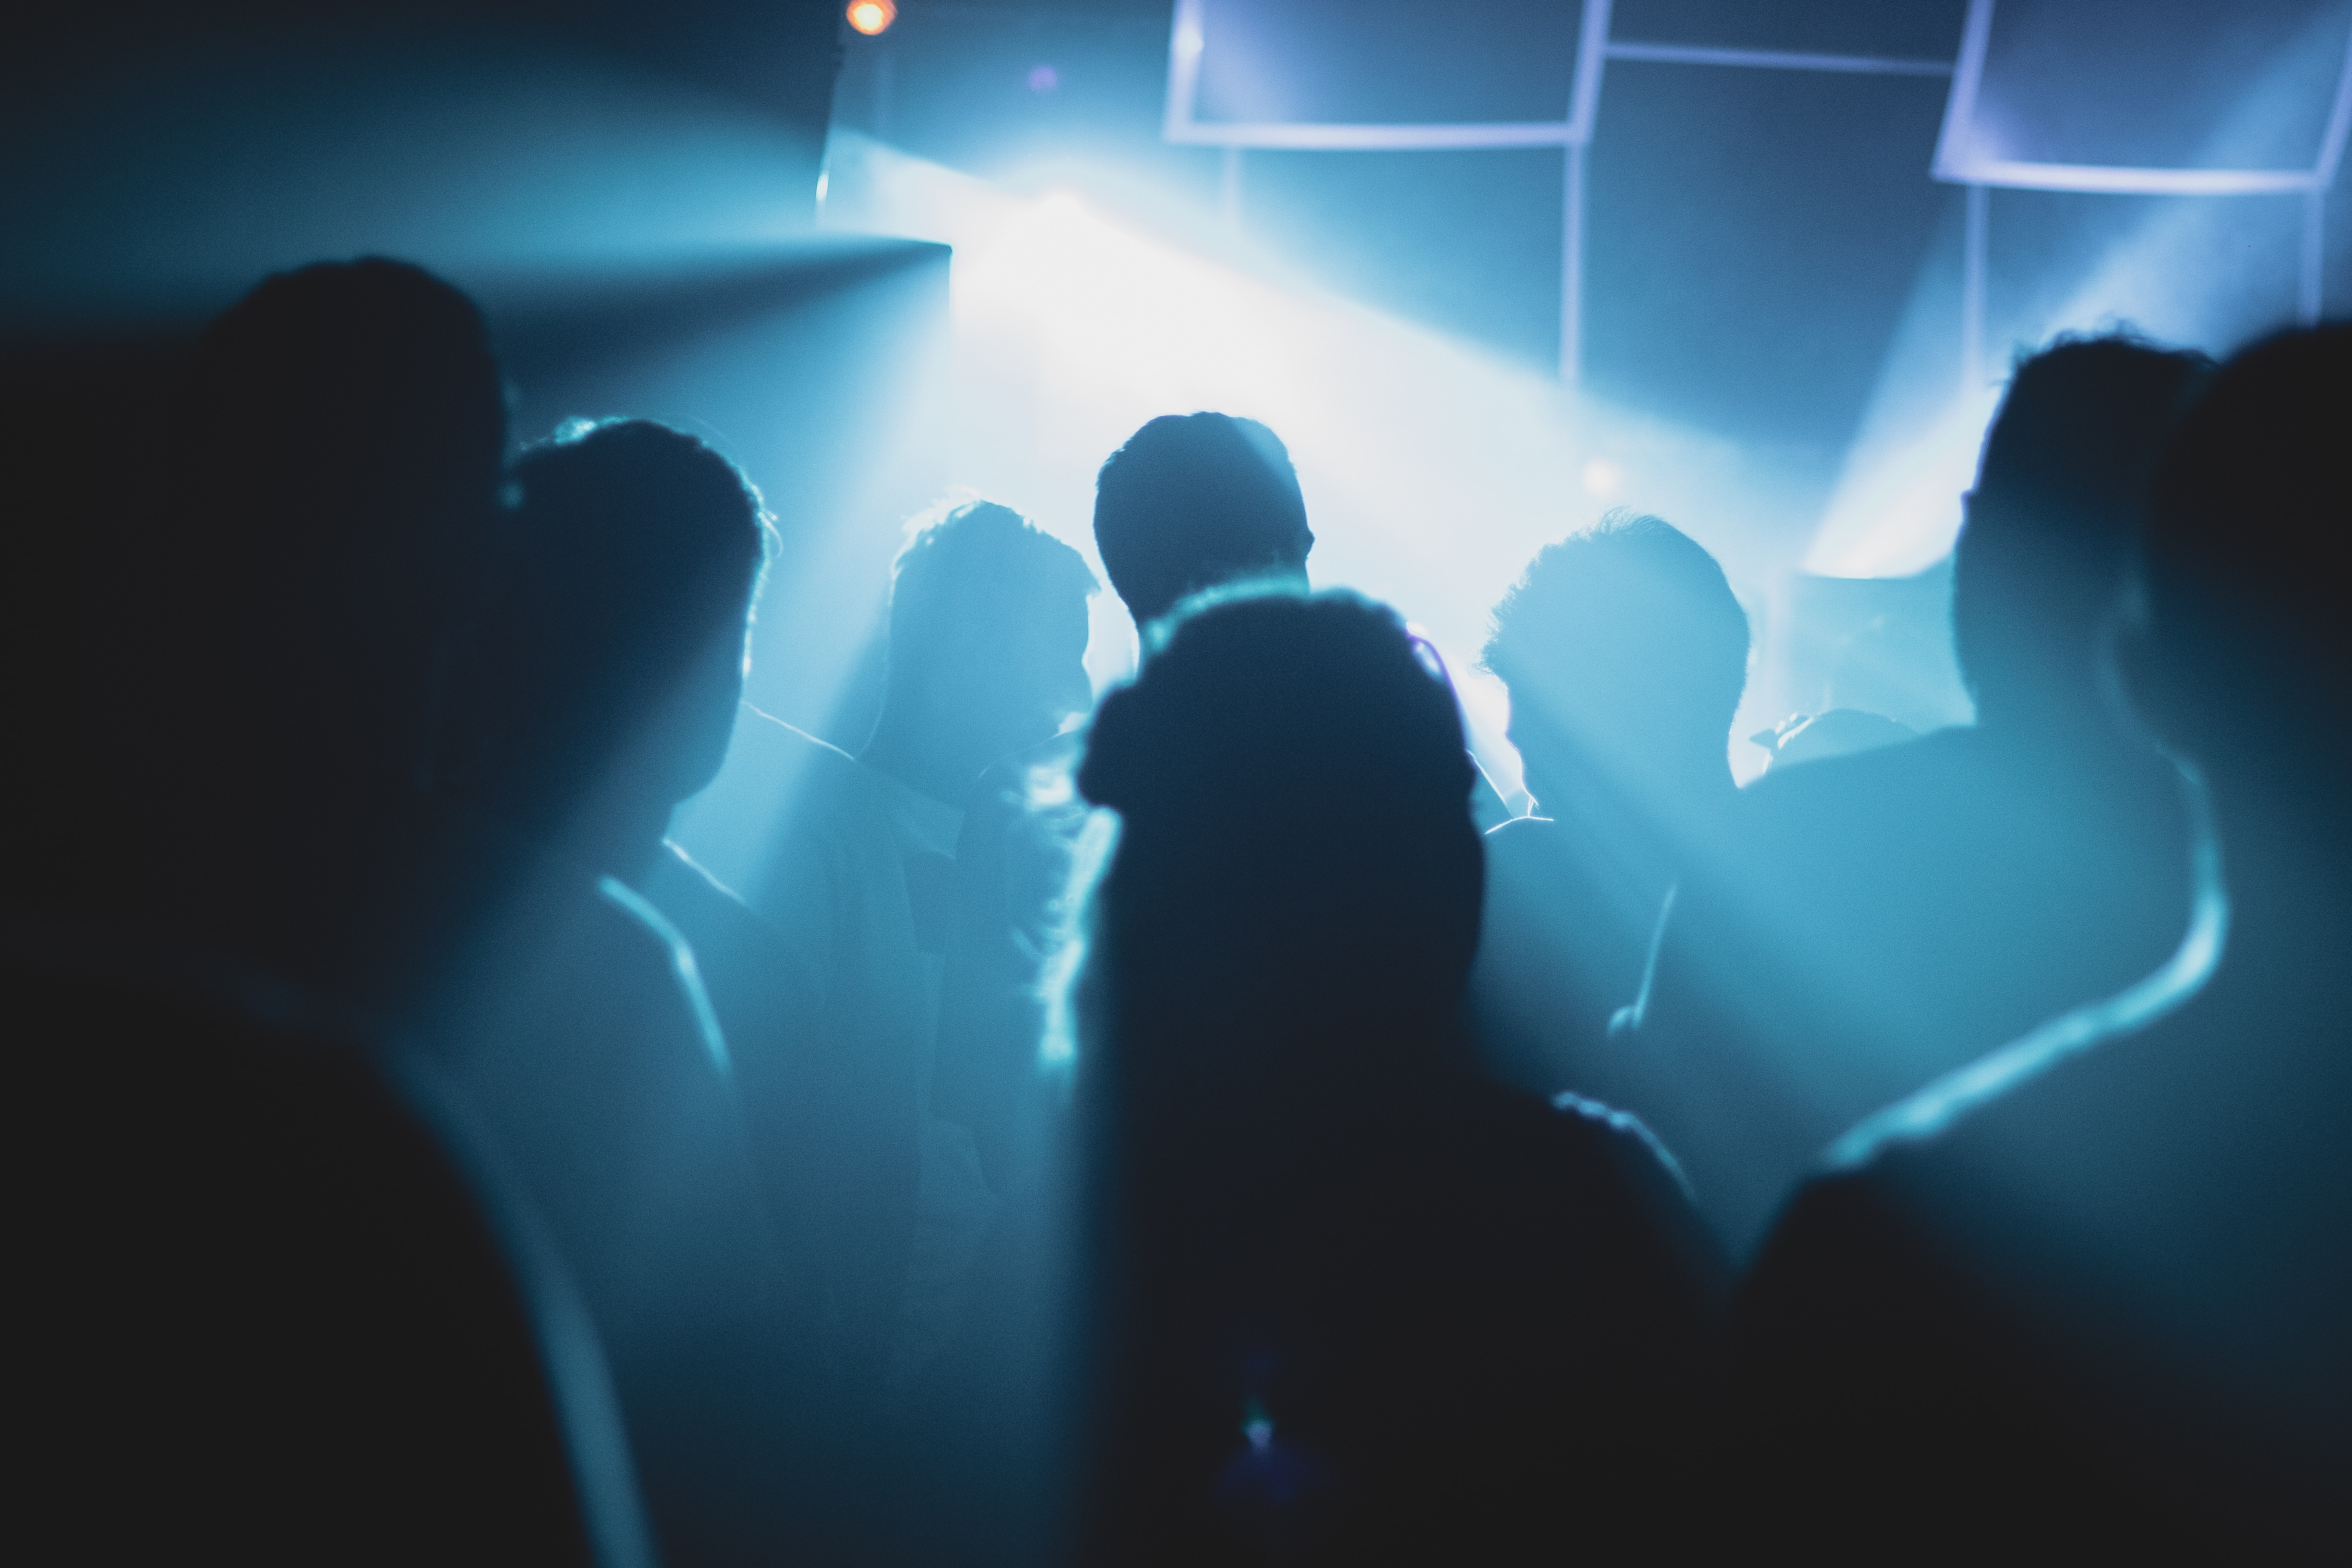 Girl crowded at a party. Image credit: Baptiste MG on Unsplash.